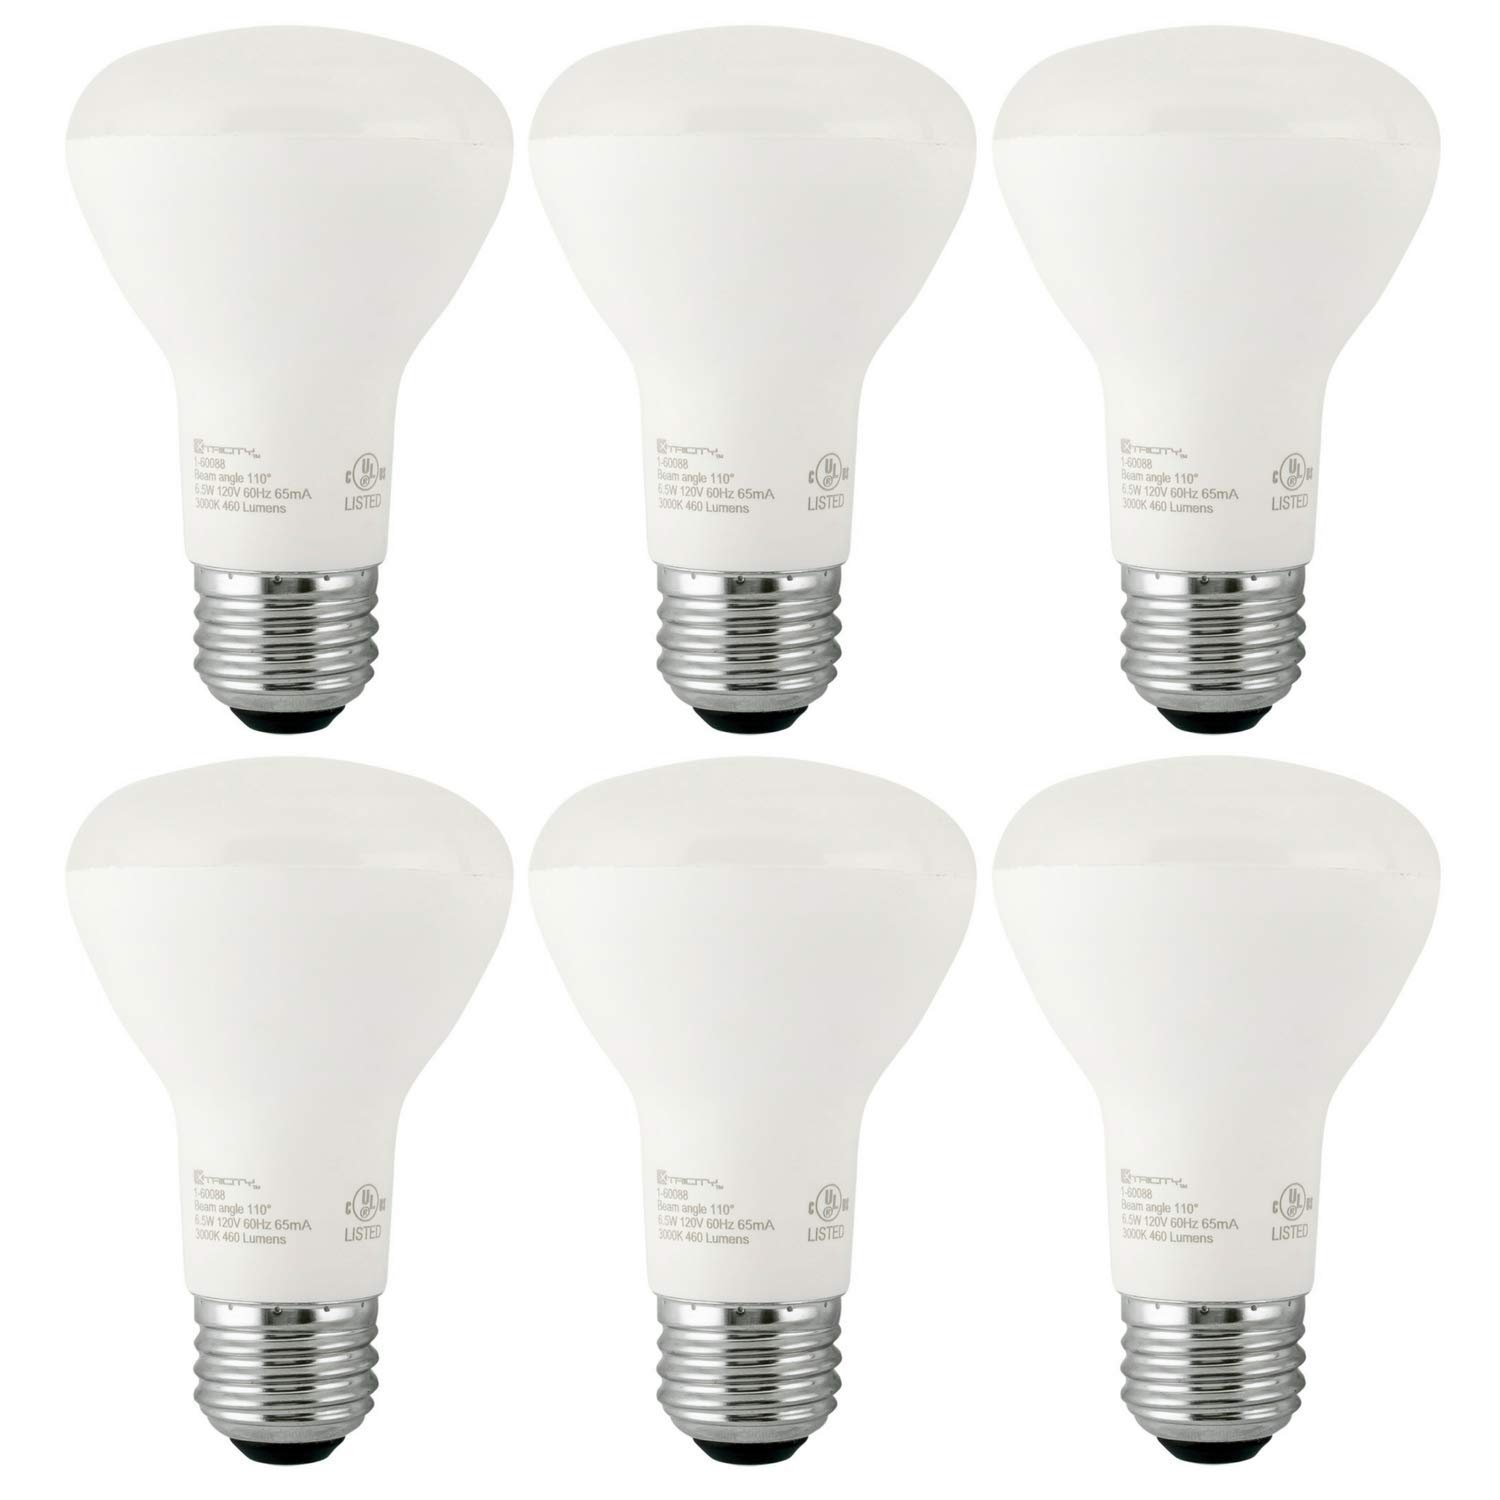 Xtricity BR20 LED Dimmable Light Bulb, 8W (50W Equivalent) 120 Volt, 3000K Soft White, CRI 90+, Wide Flood Recessed Can Lights, Outdoor Indoor, E26 Medium Base, Energy Star, UL Listed (Pack of 6)